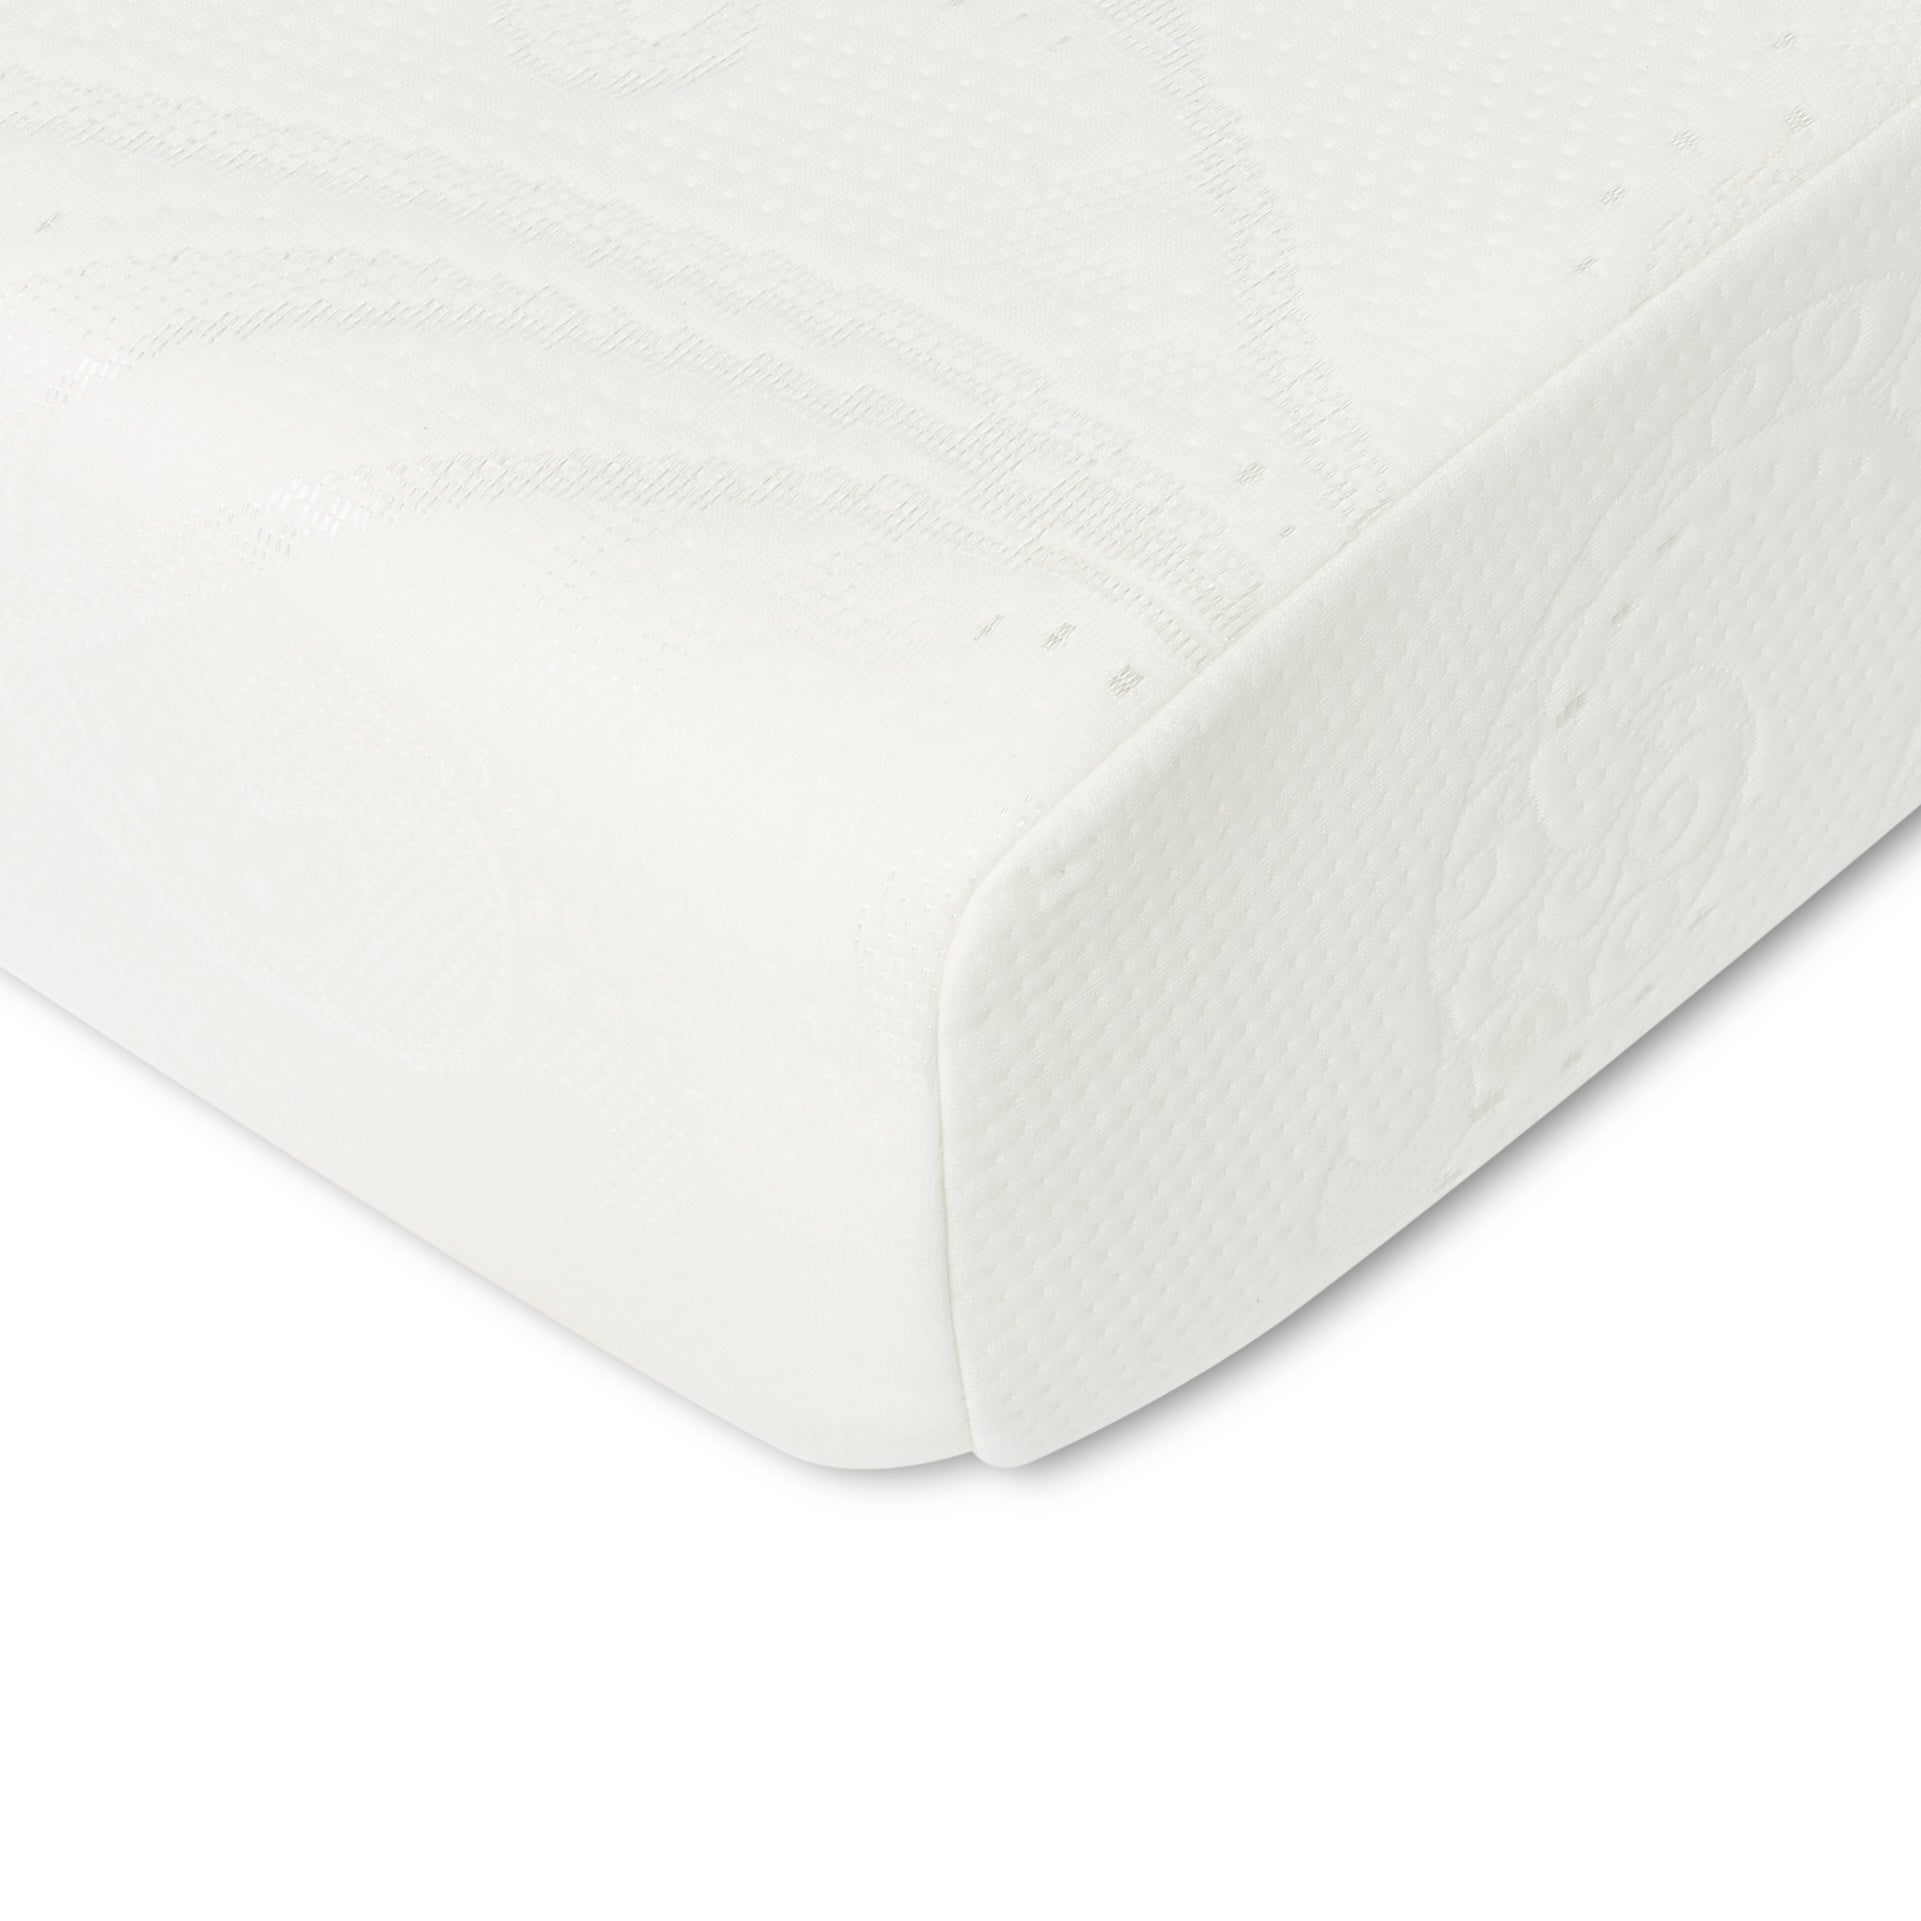 Select Luxury Medium Firm 7 inch Twin size Memory Foam Mattress